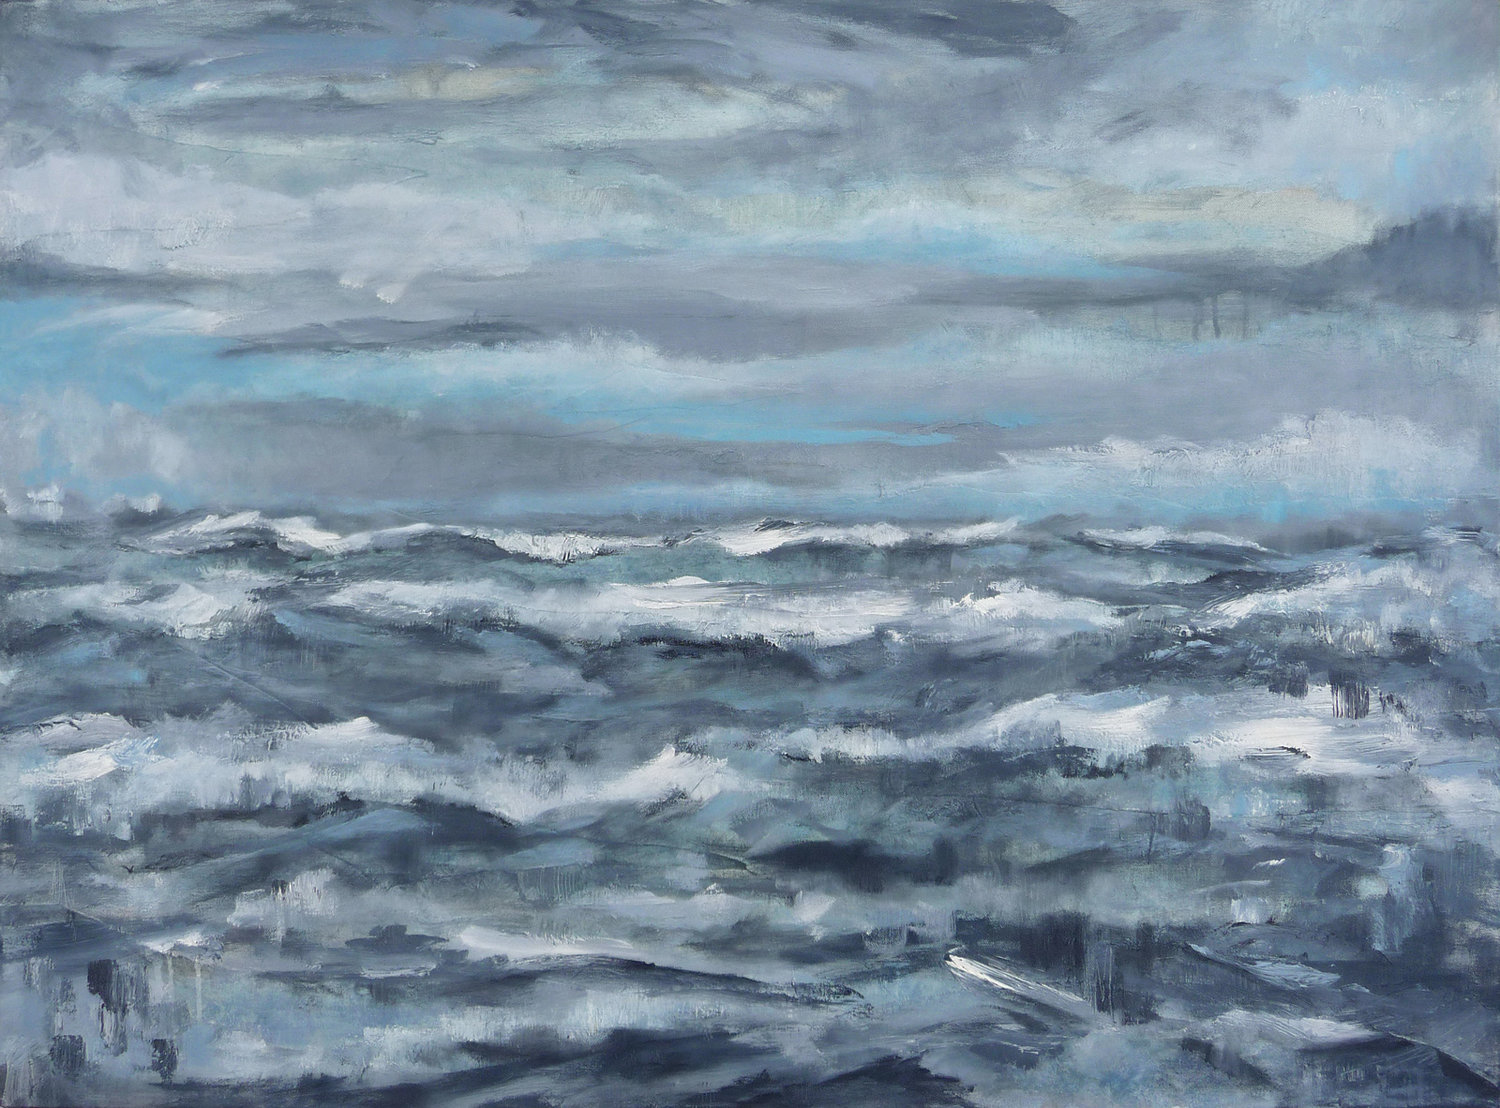 After the Storm II   ,  2018. Oil on canvas. 30 x 40 inches